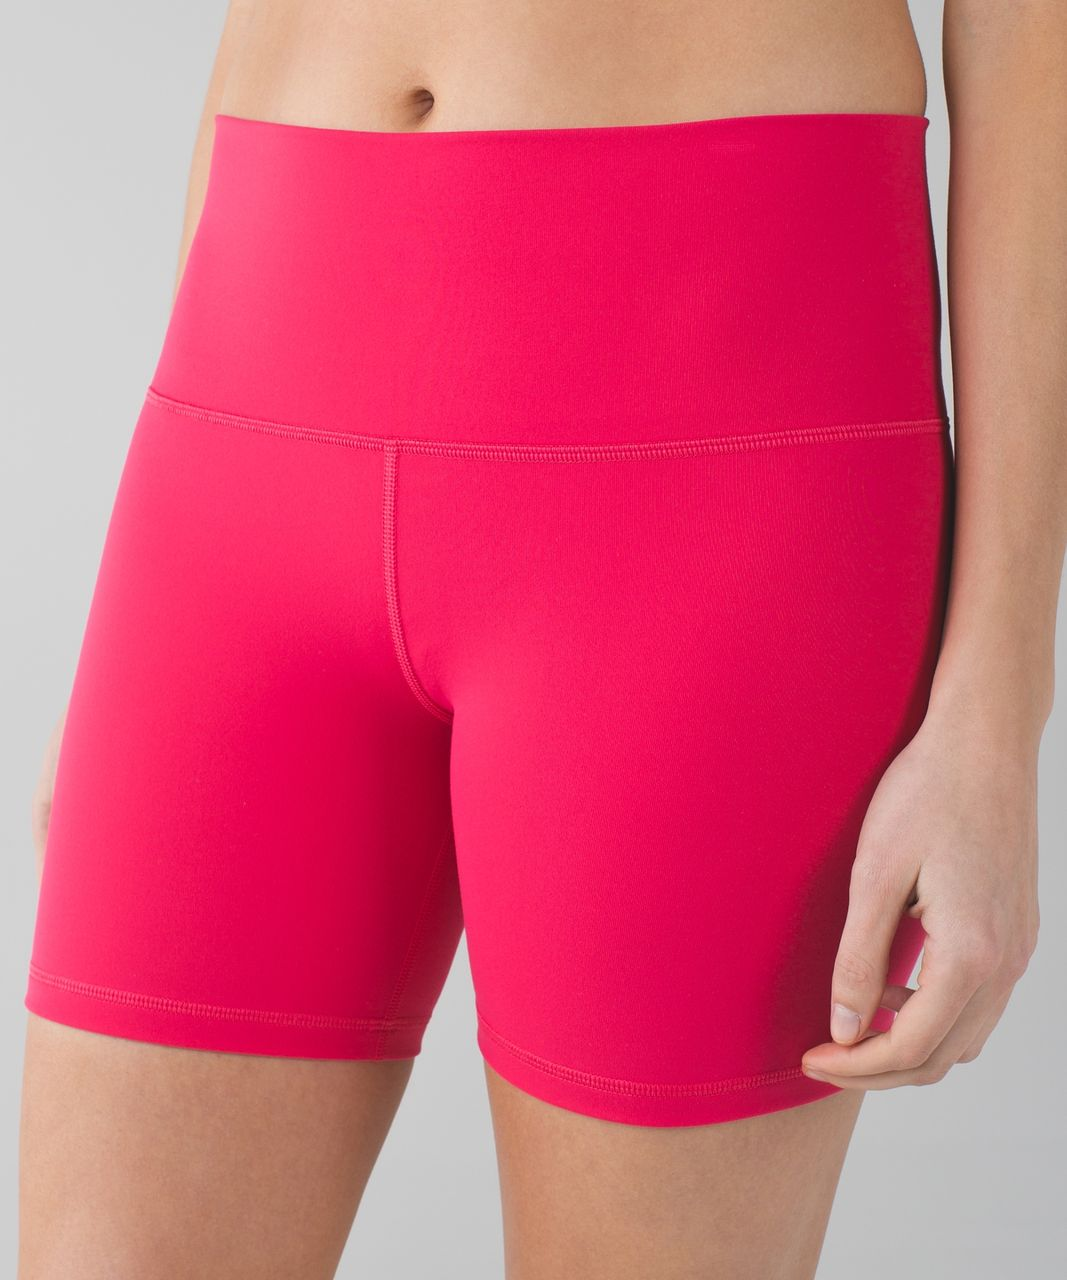 Lululemon Groove Short II (Regular) *Full-On Luon - Boom Juice